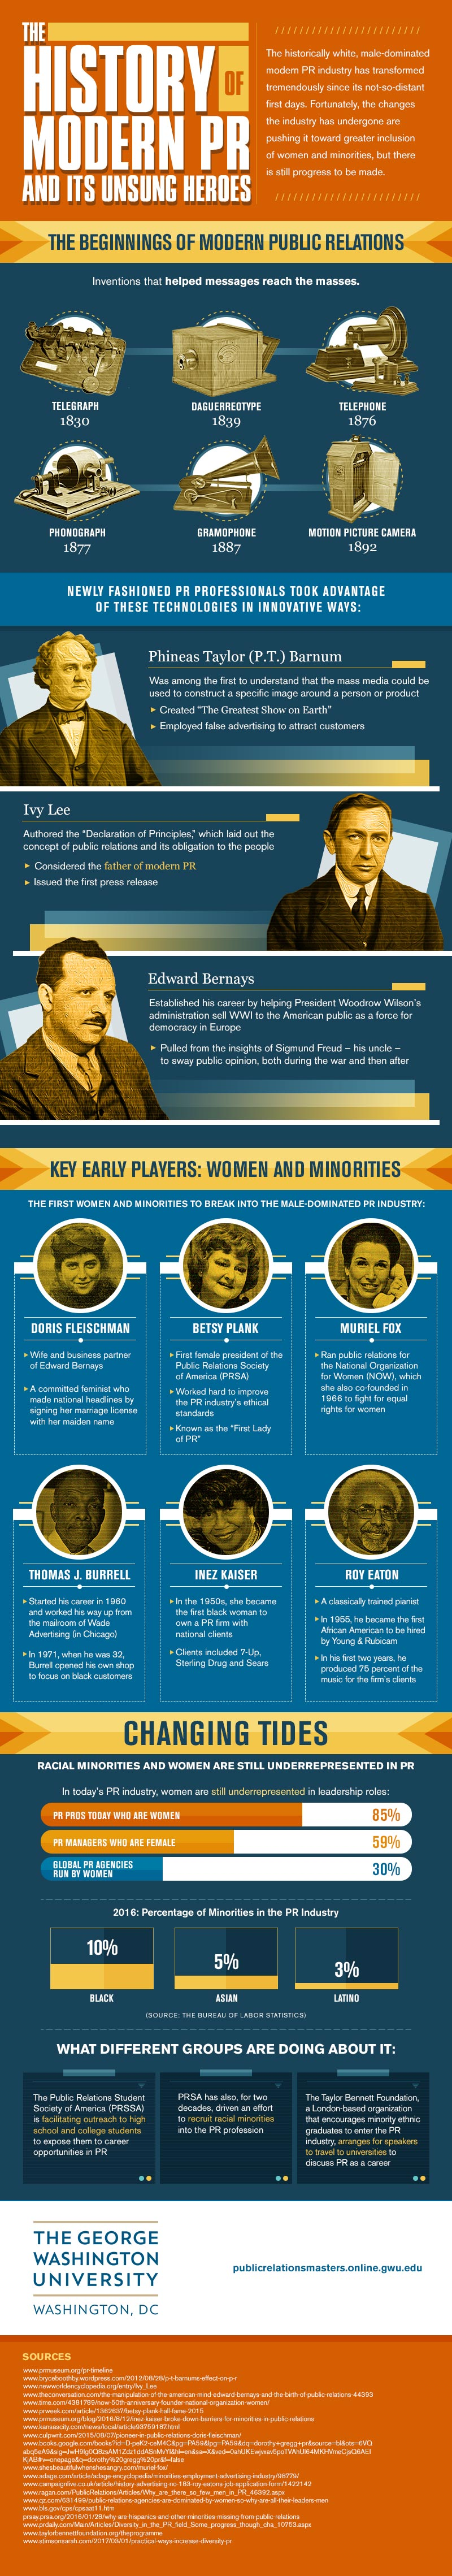 Infographic on the history of modern PR and the heroes behind it